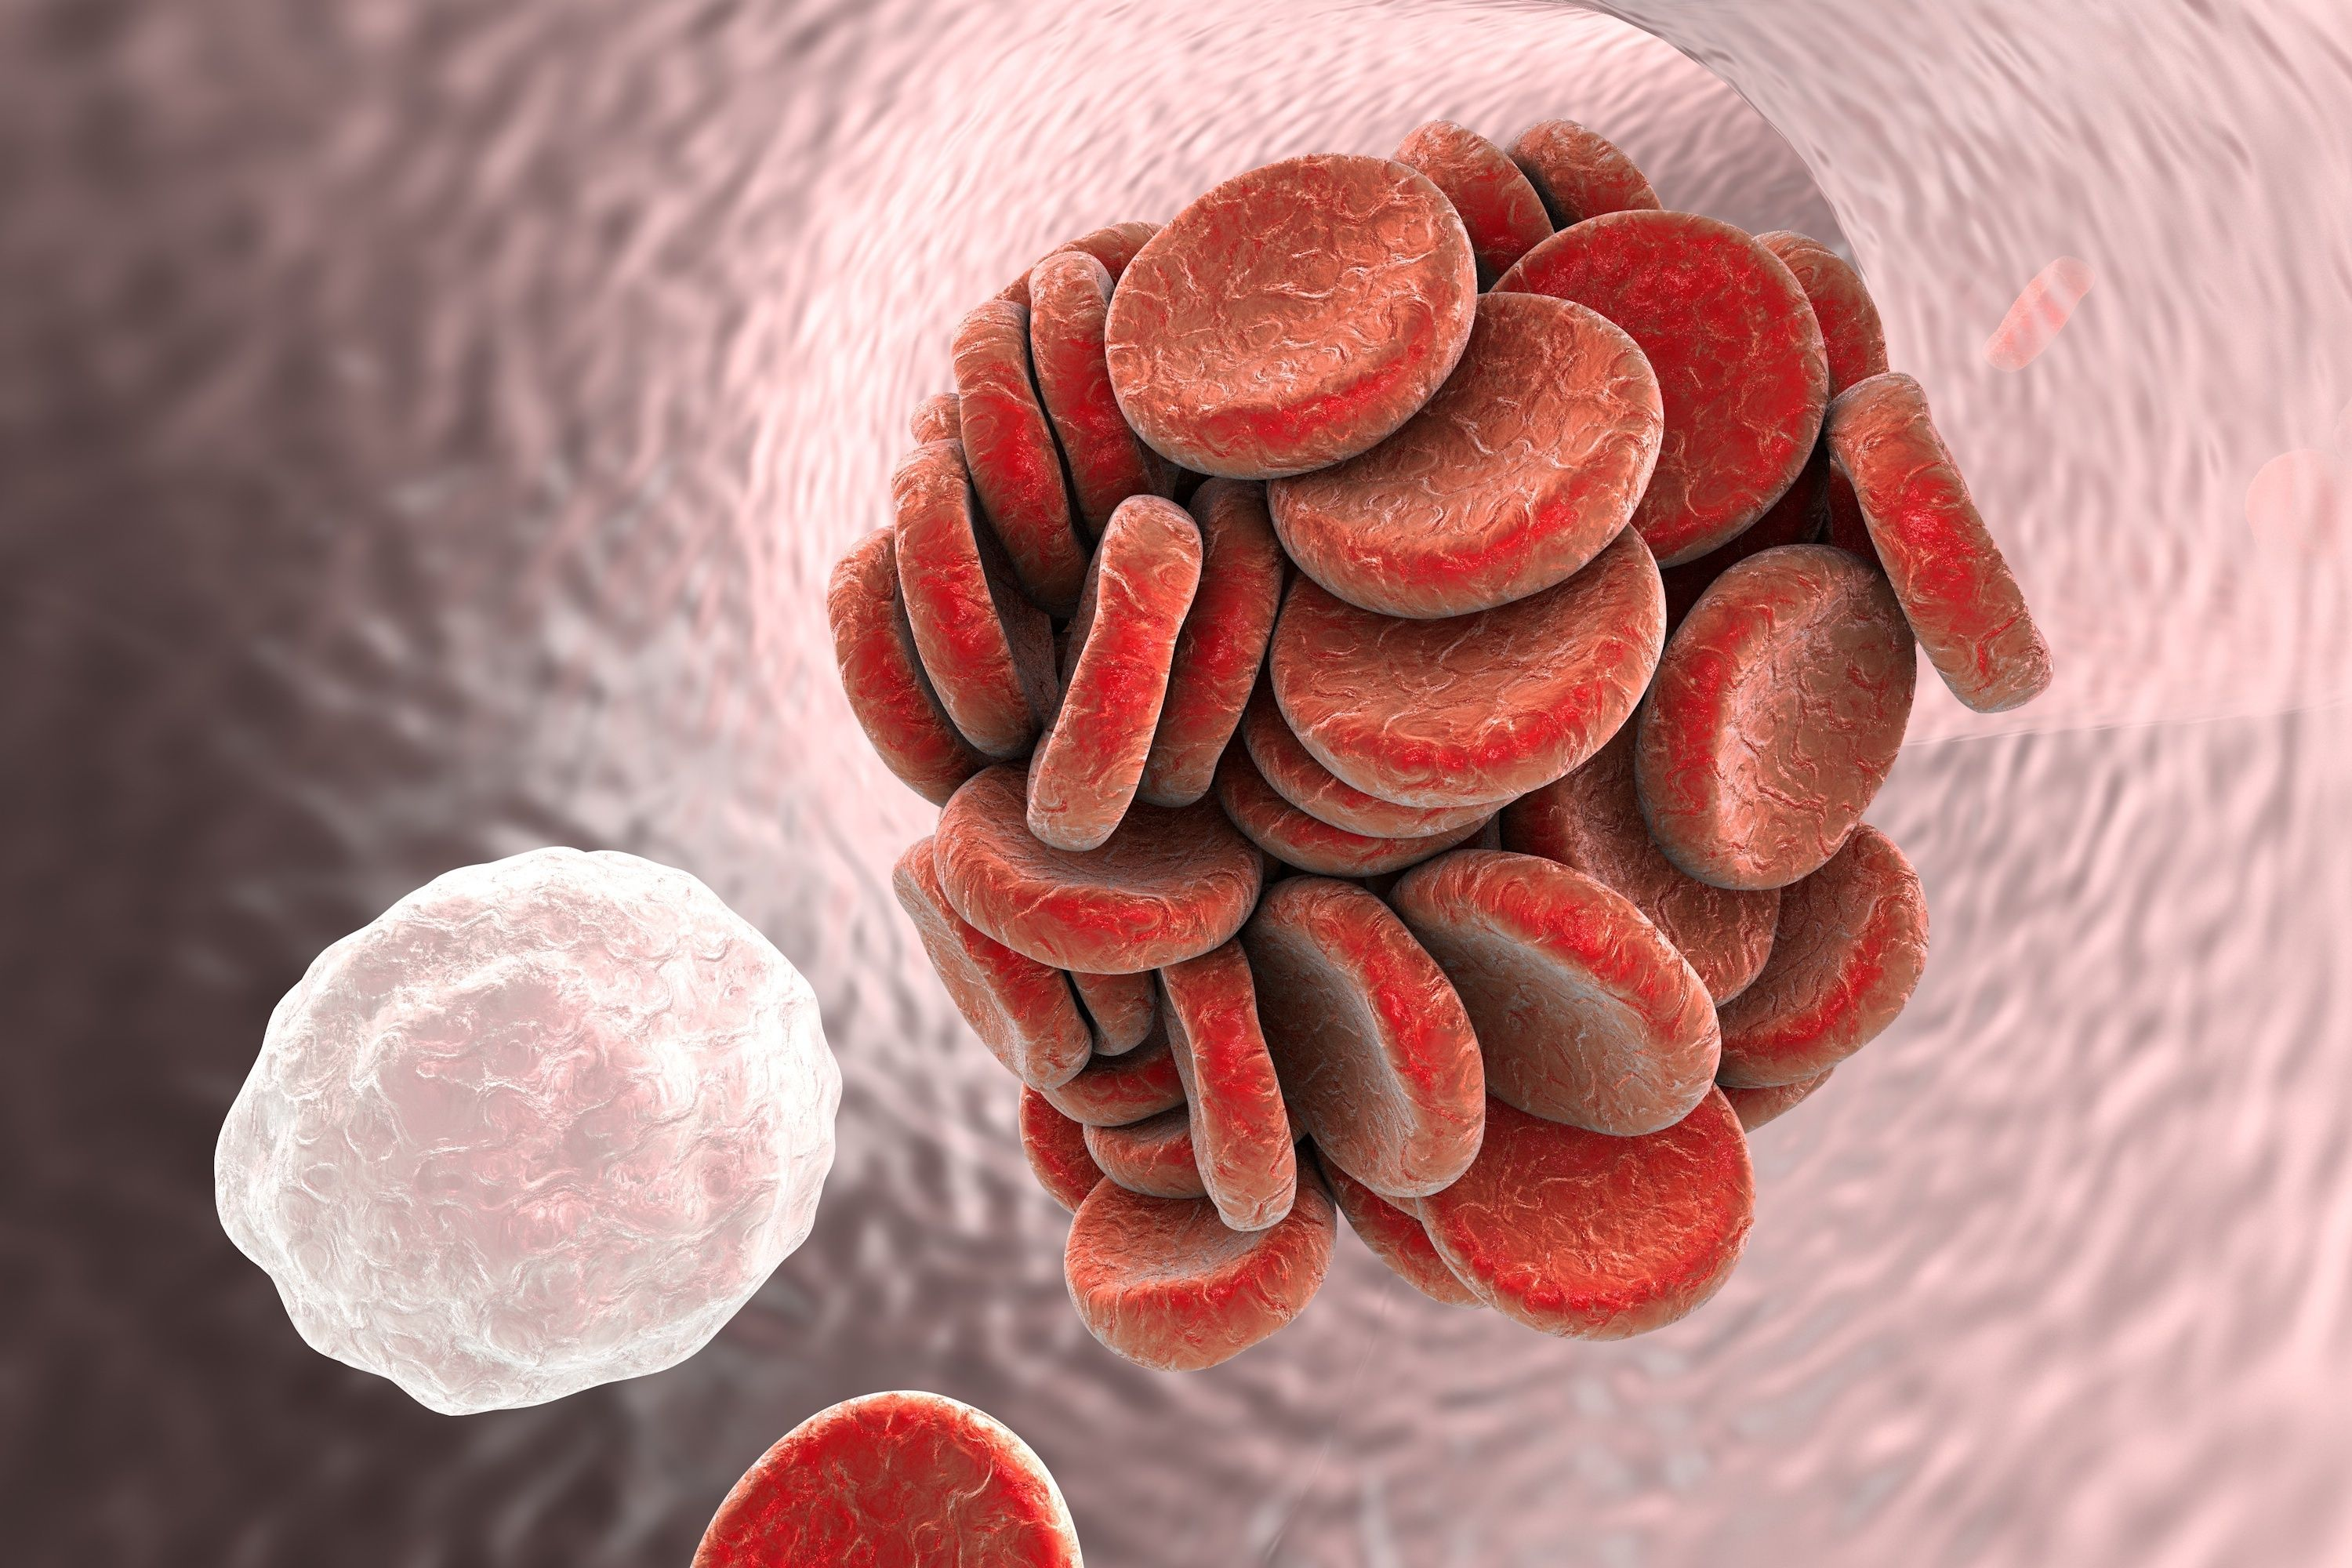 Read about a study finding systemic sclerosis patients are at a threefold higher risk of venous thromboembolism events, especially in year after diagnosis.